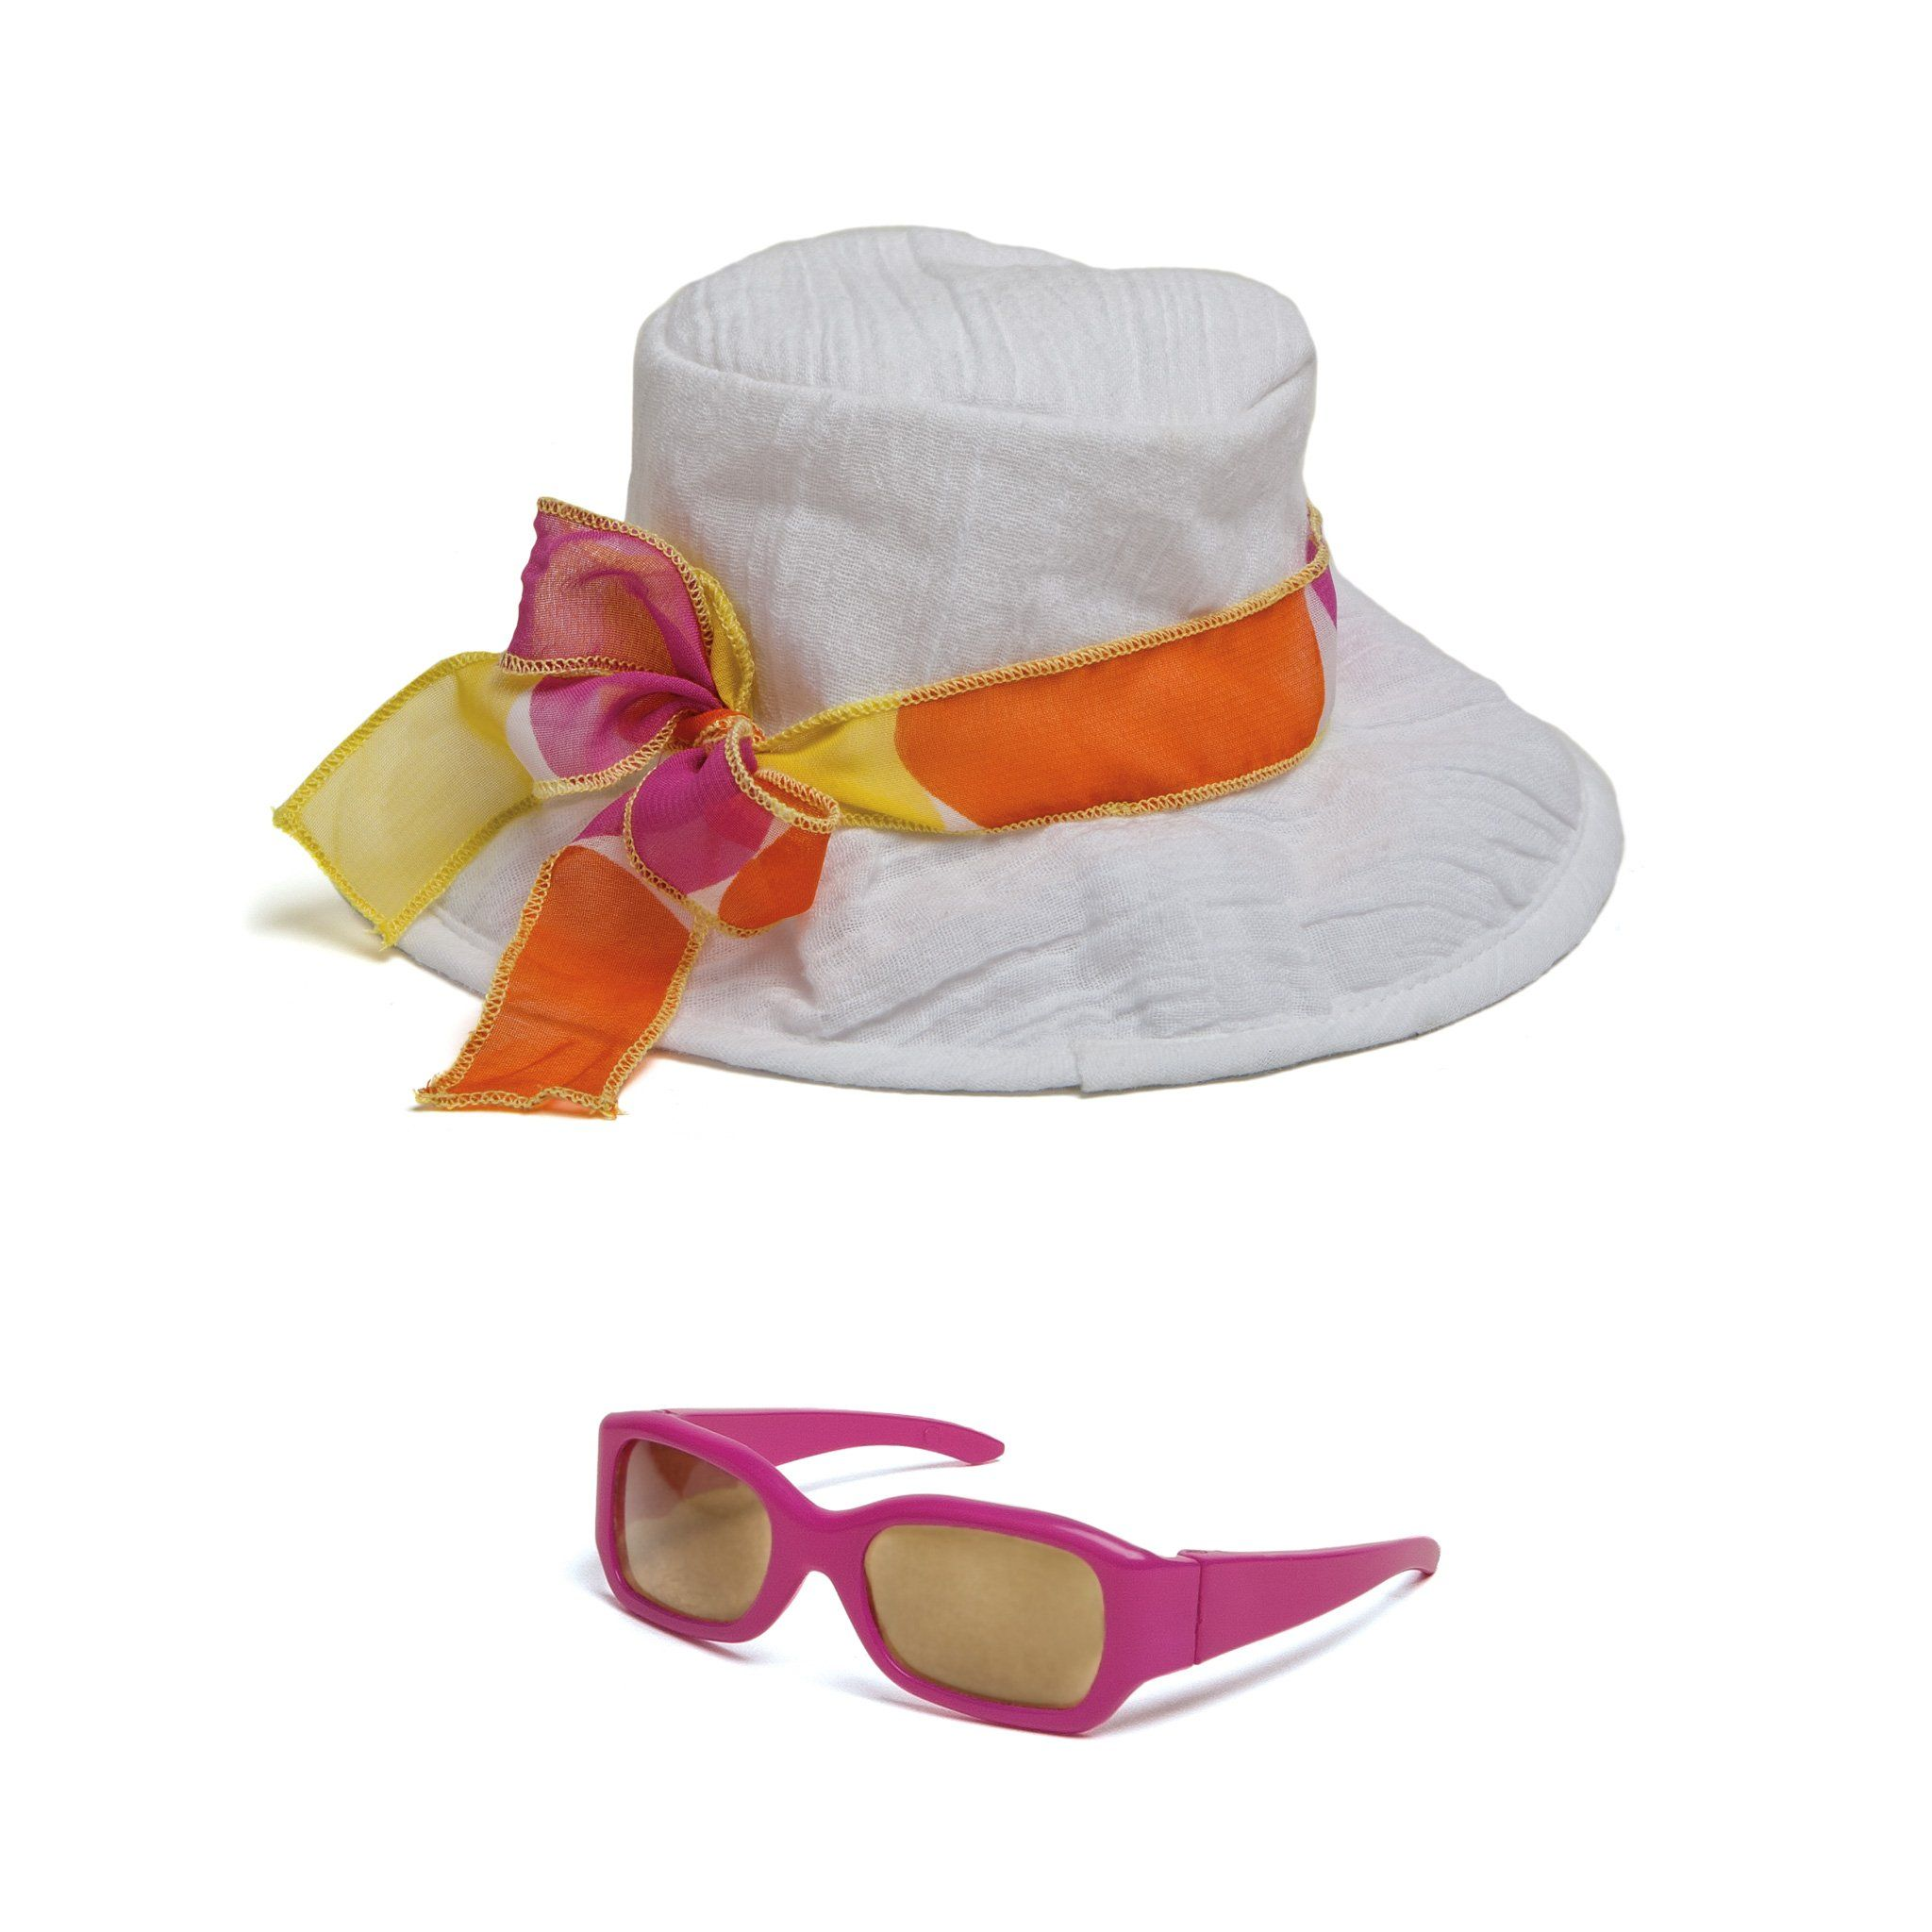 6c8e2f6e846 ... Shoreline Sun white beach hat with colourful tie and pink sunglasses  fits all 18 inch dolls ...